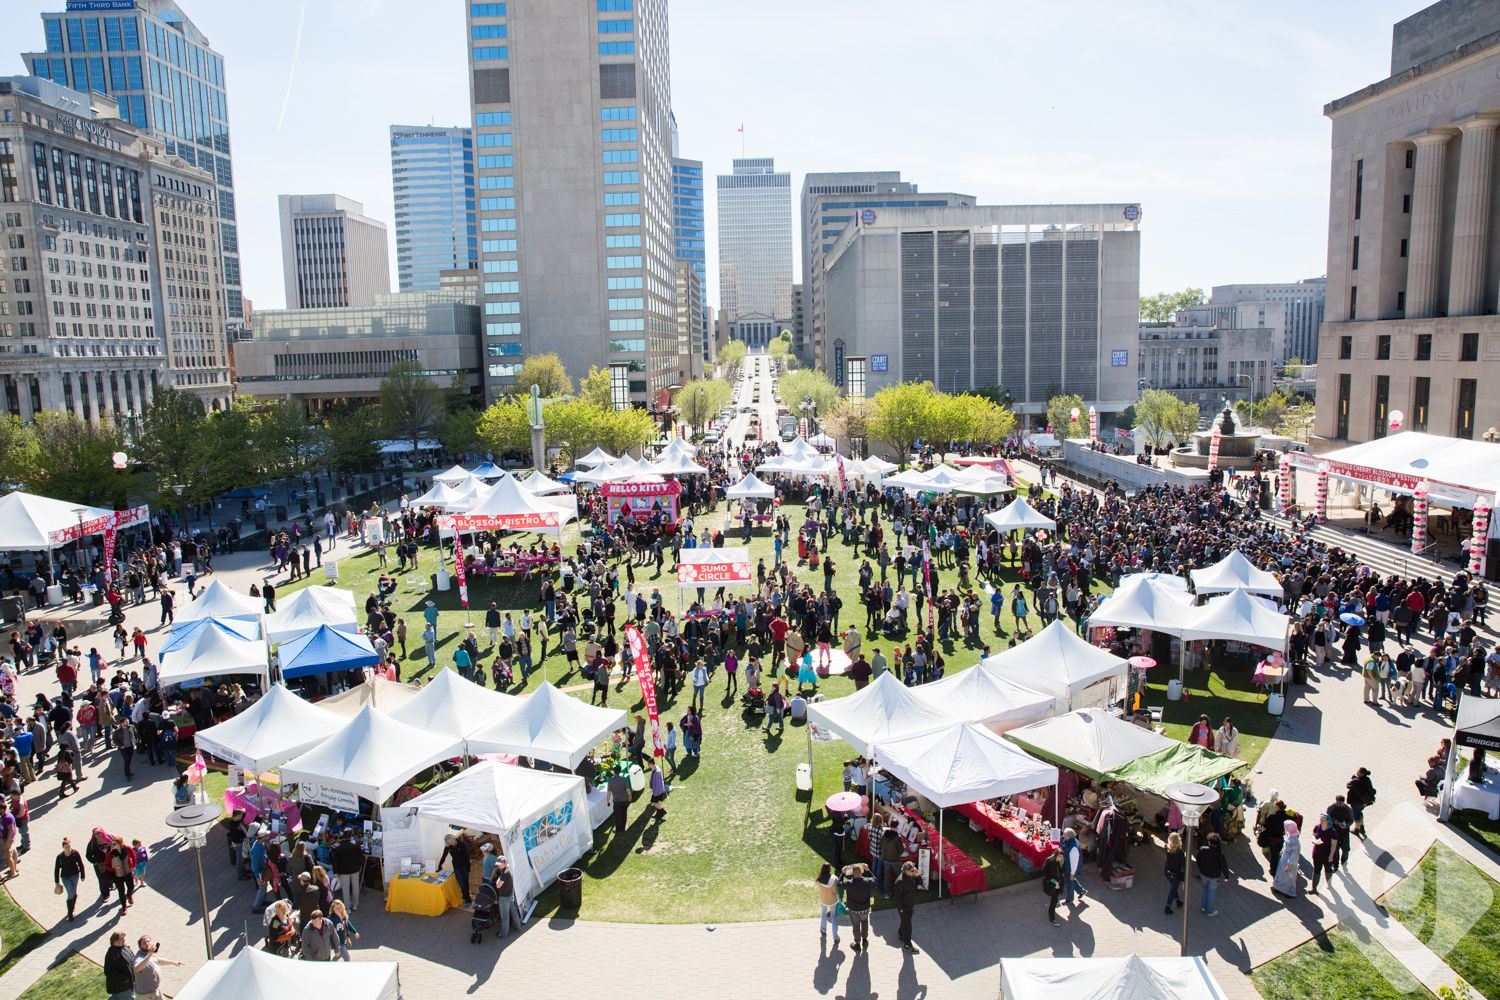 The 2018 Nashville Cherry Blossom Festival Will Be On Saturday April 14 2018 From 10 00am To 5 00pm At Public Square Park The Spring Event Nashville Event